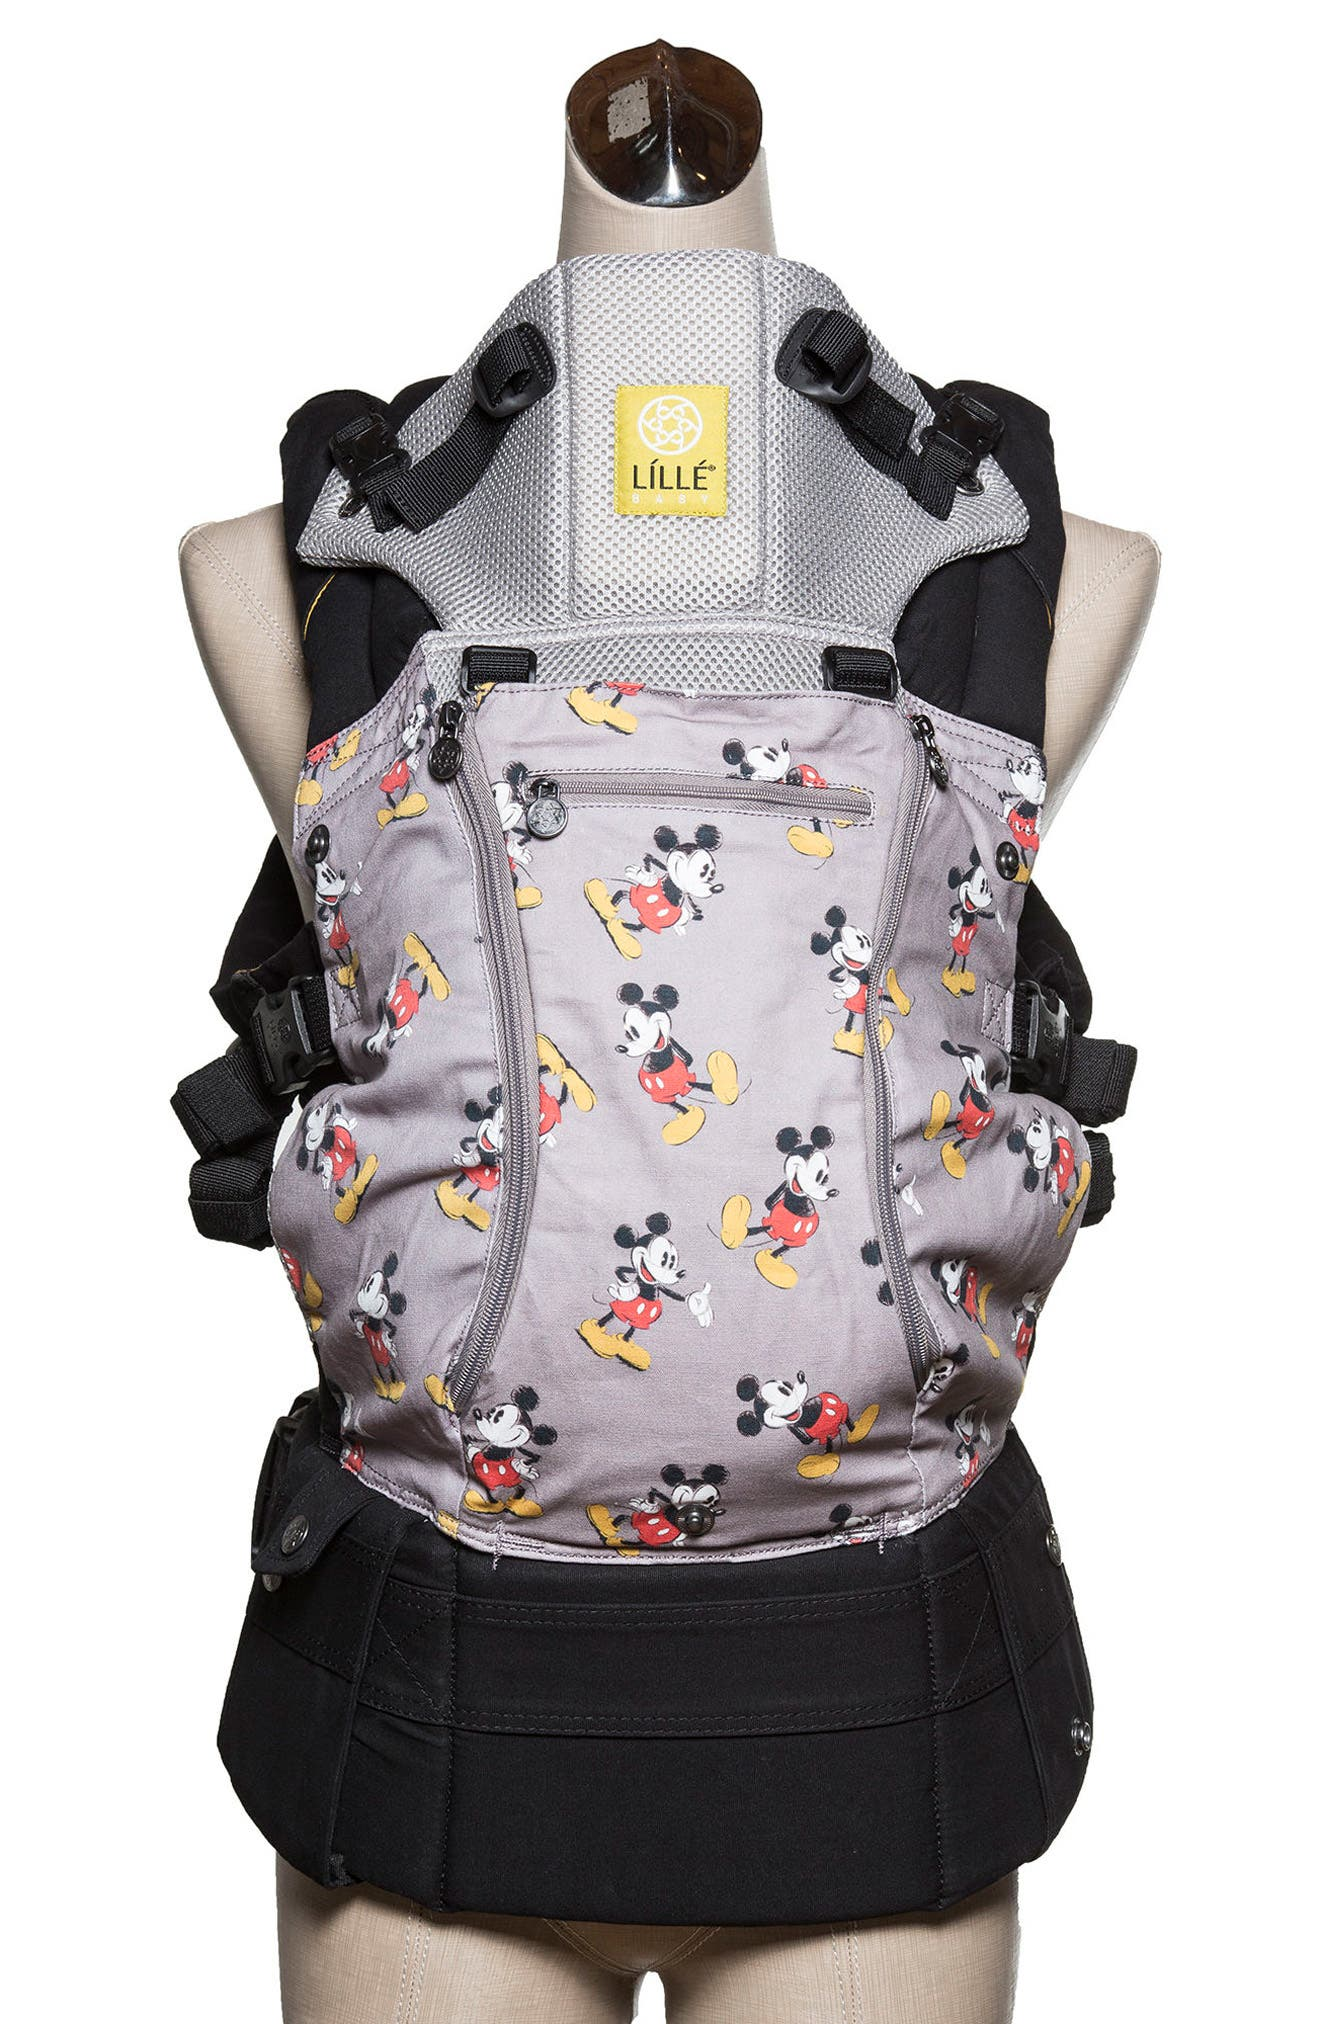 x Disney<sup>®</sup> Complete Airflow - Mickey Mouse Classic Baby Carrier,                         Main,                         color, BLACK